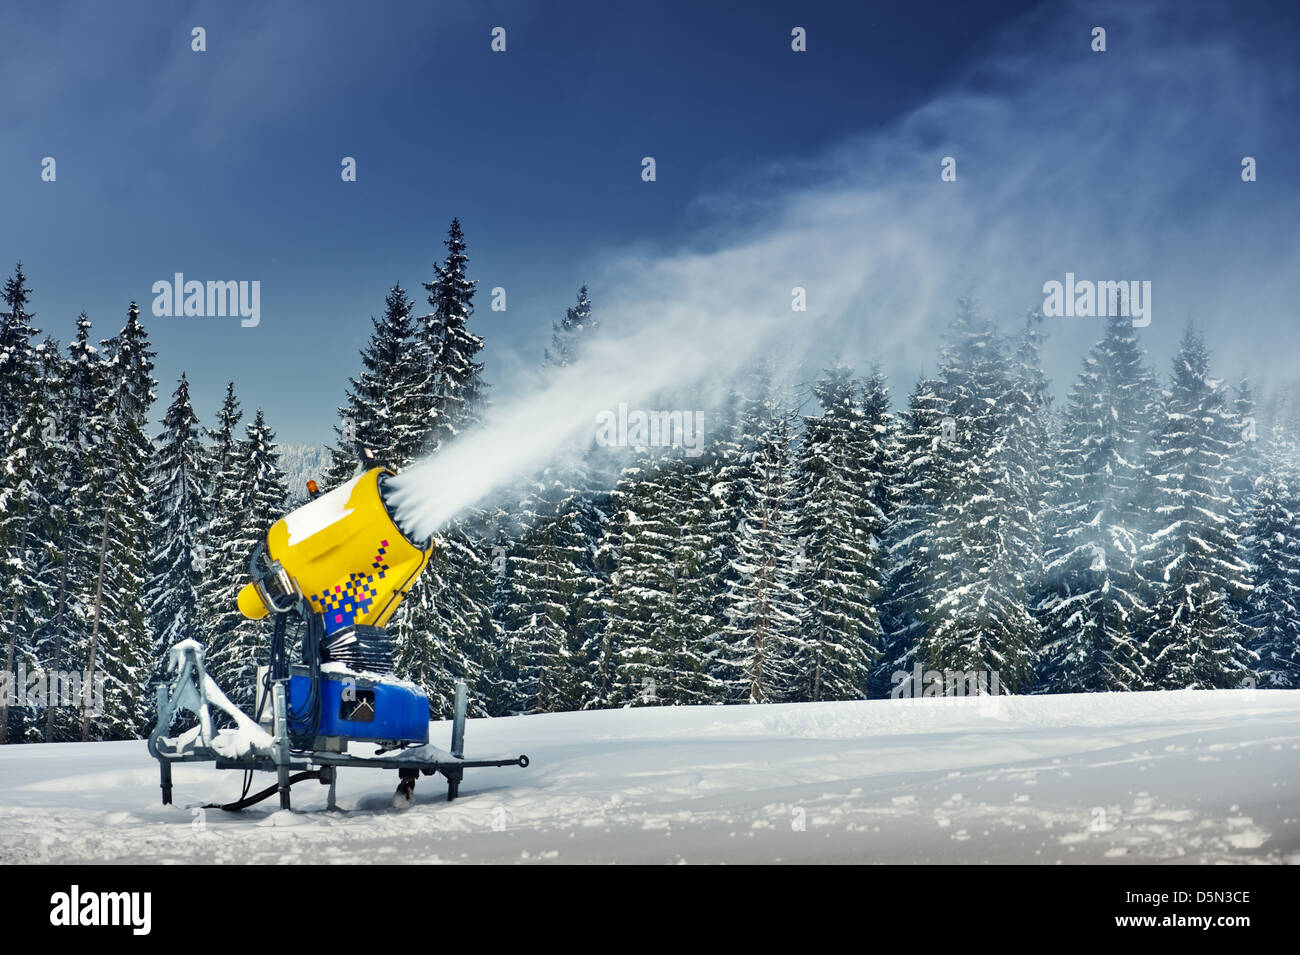 snow cannon in winter mountain - Stock Image